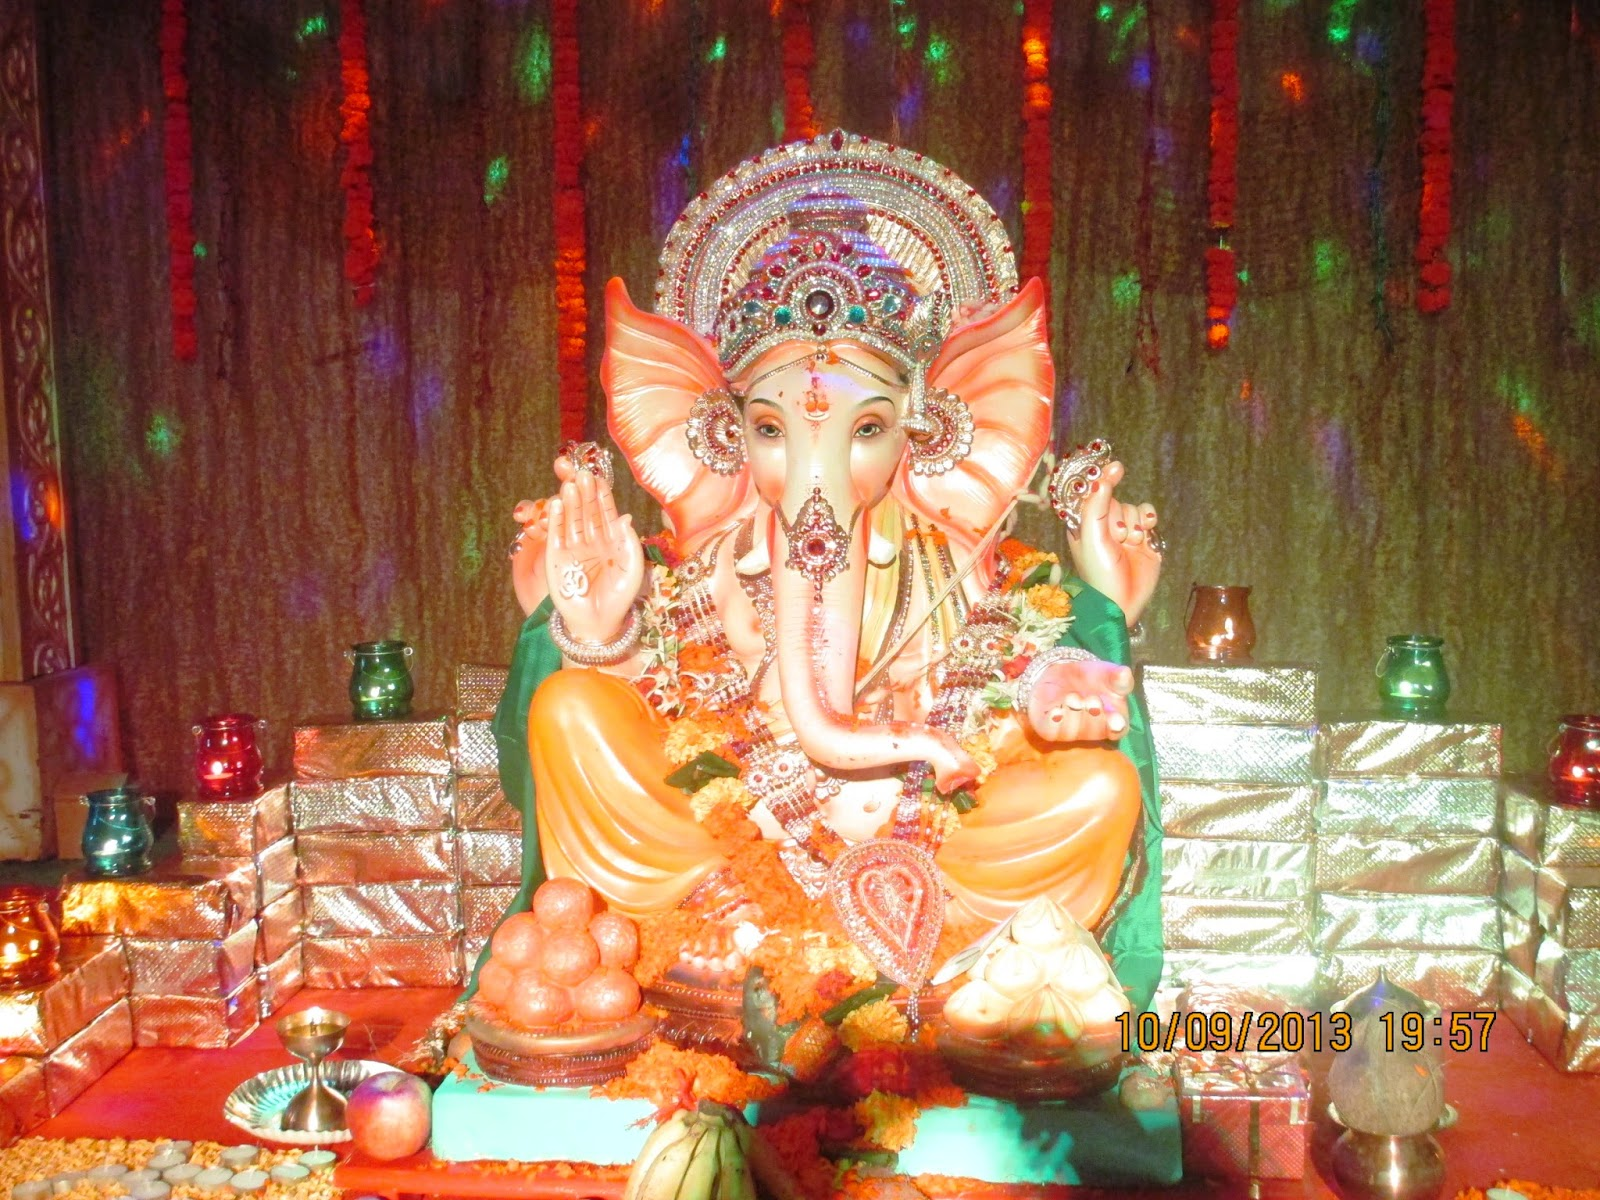 Ganesh Puja is known as Ganesh Chaturthi